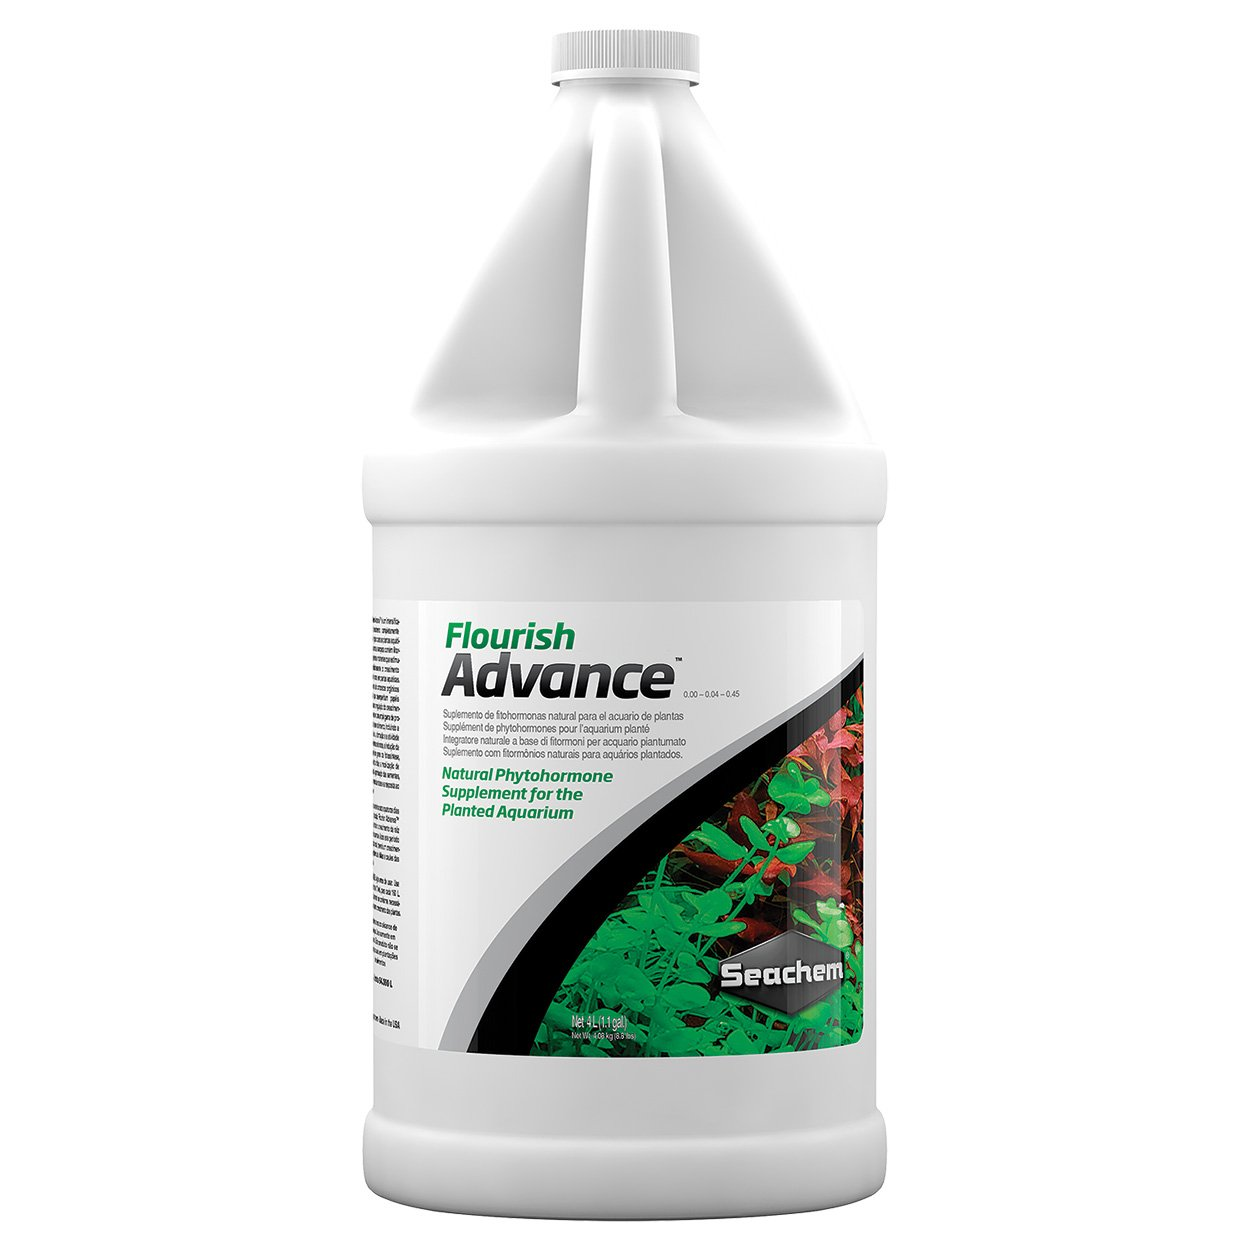 Seachem Flourish Advance Growth Supplement - Aquatic Plant Aid 4 L by Seachem (Image #1)